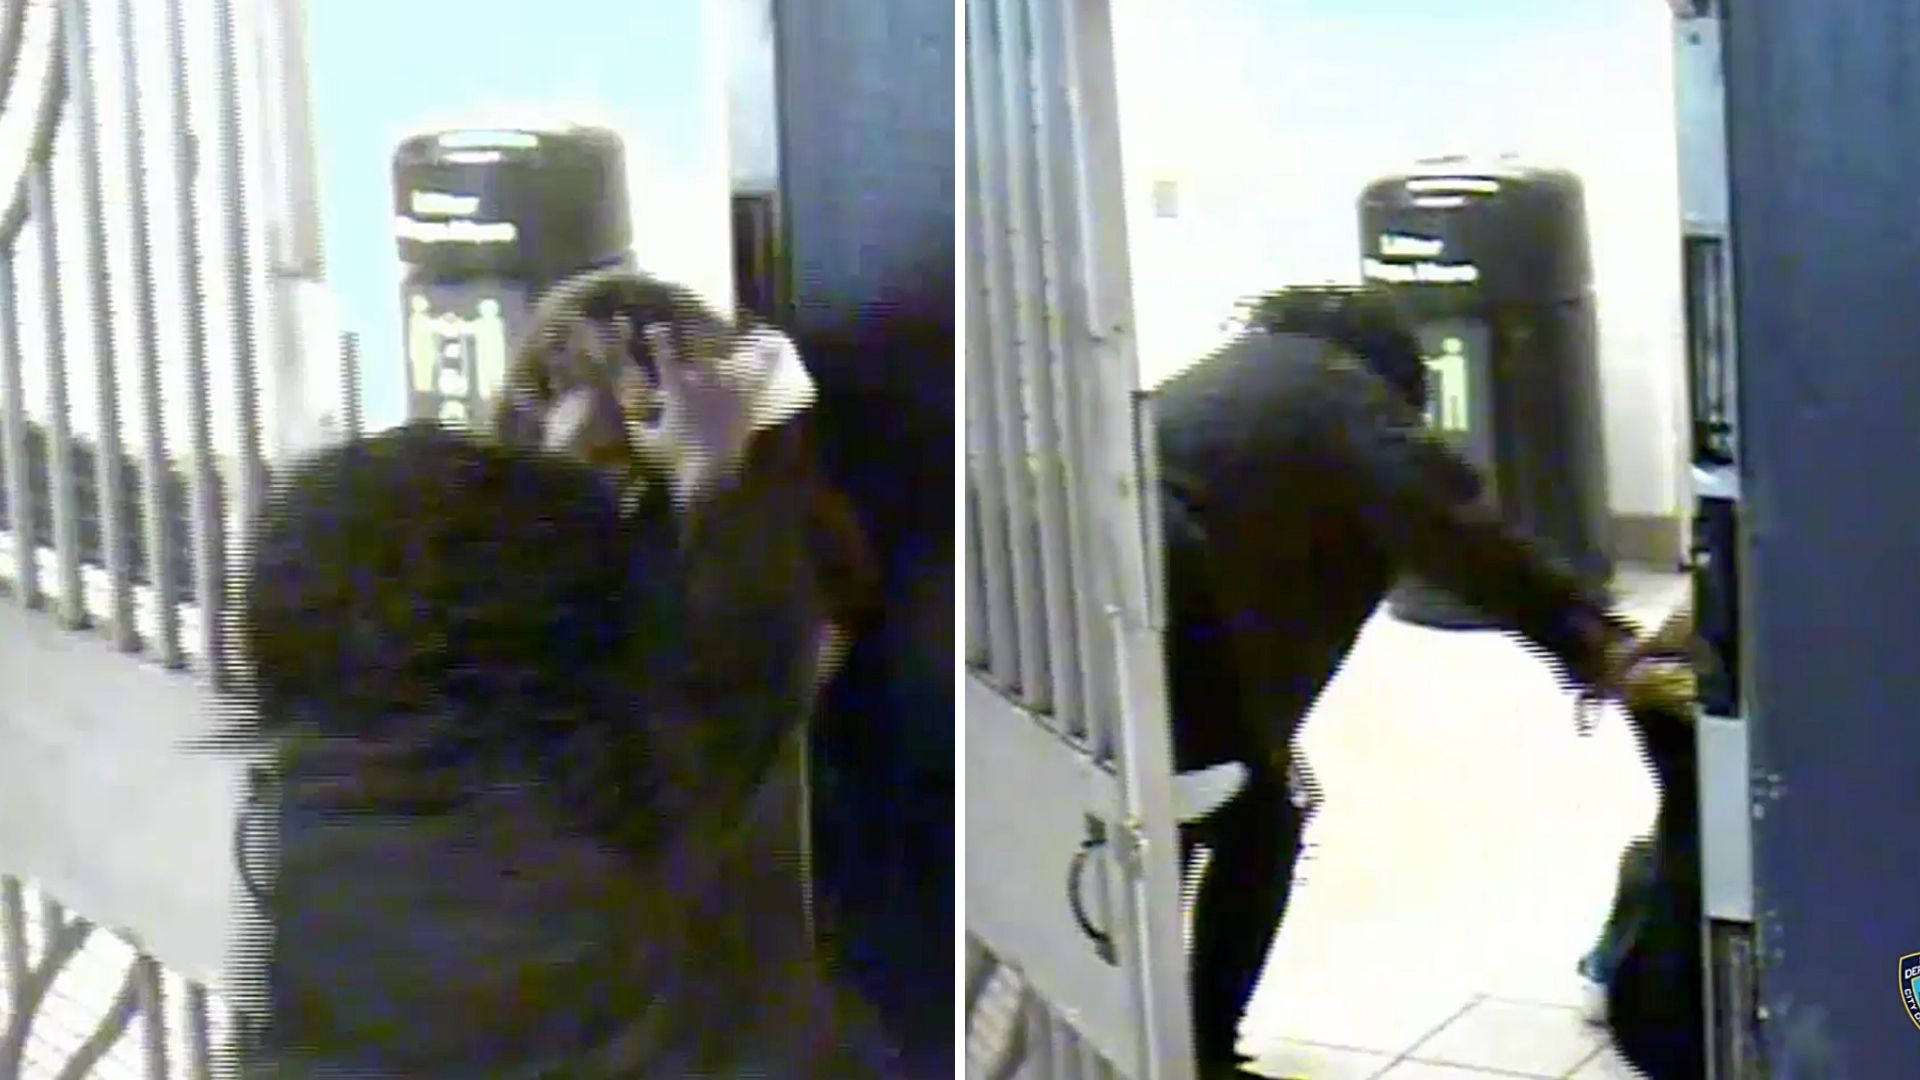 Surveillance images of a women being thrown to the ground and robbed by a woman and man inside the Queens Plaza subway station on March 13, 2021, according to police. (NYPD)